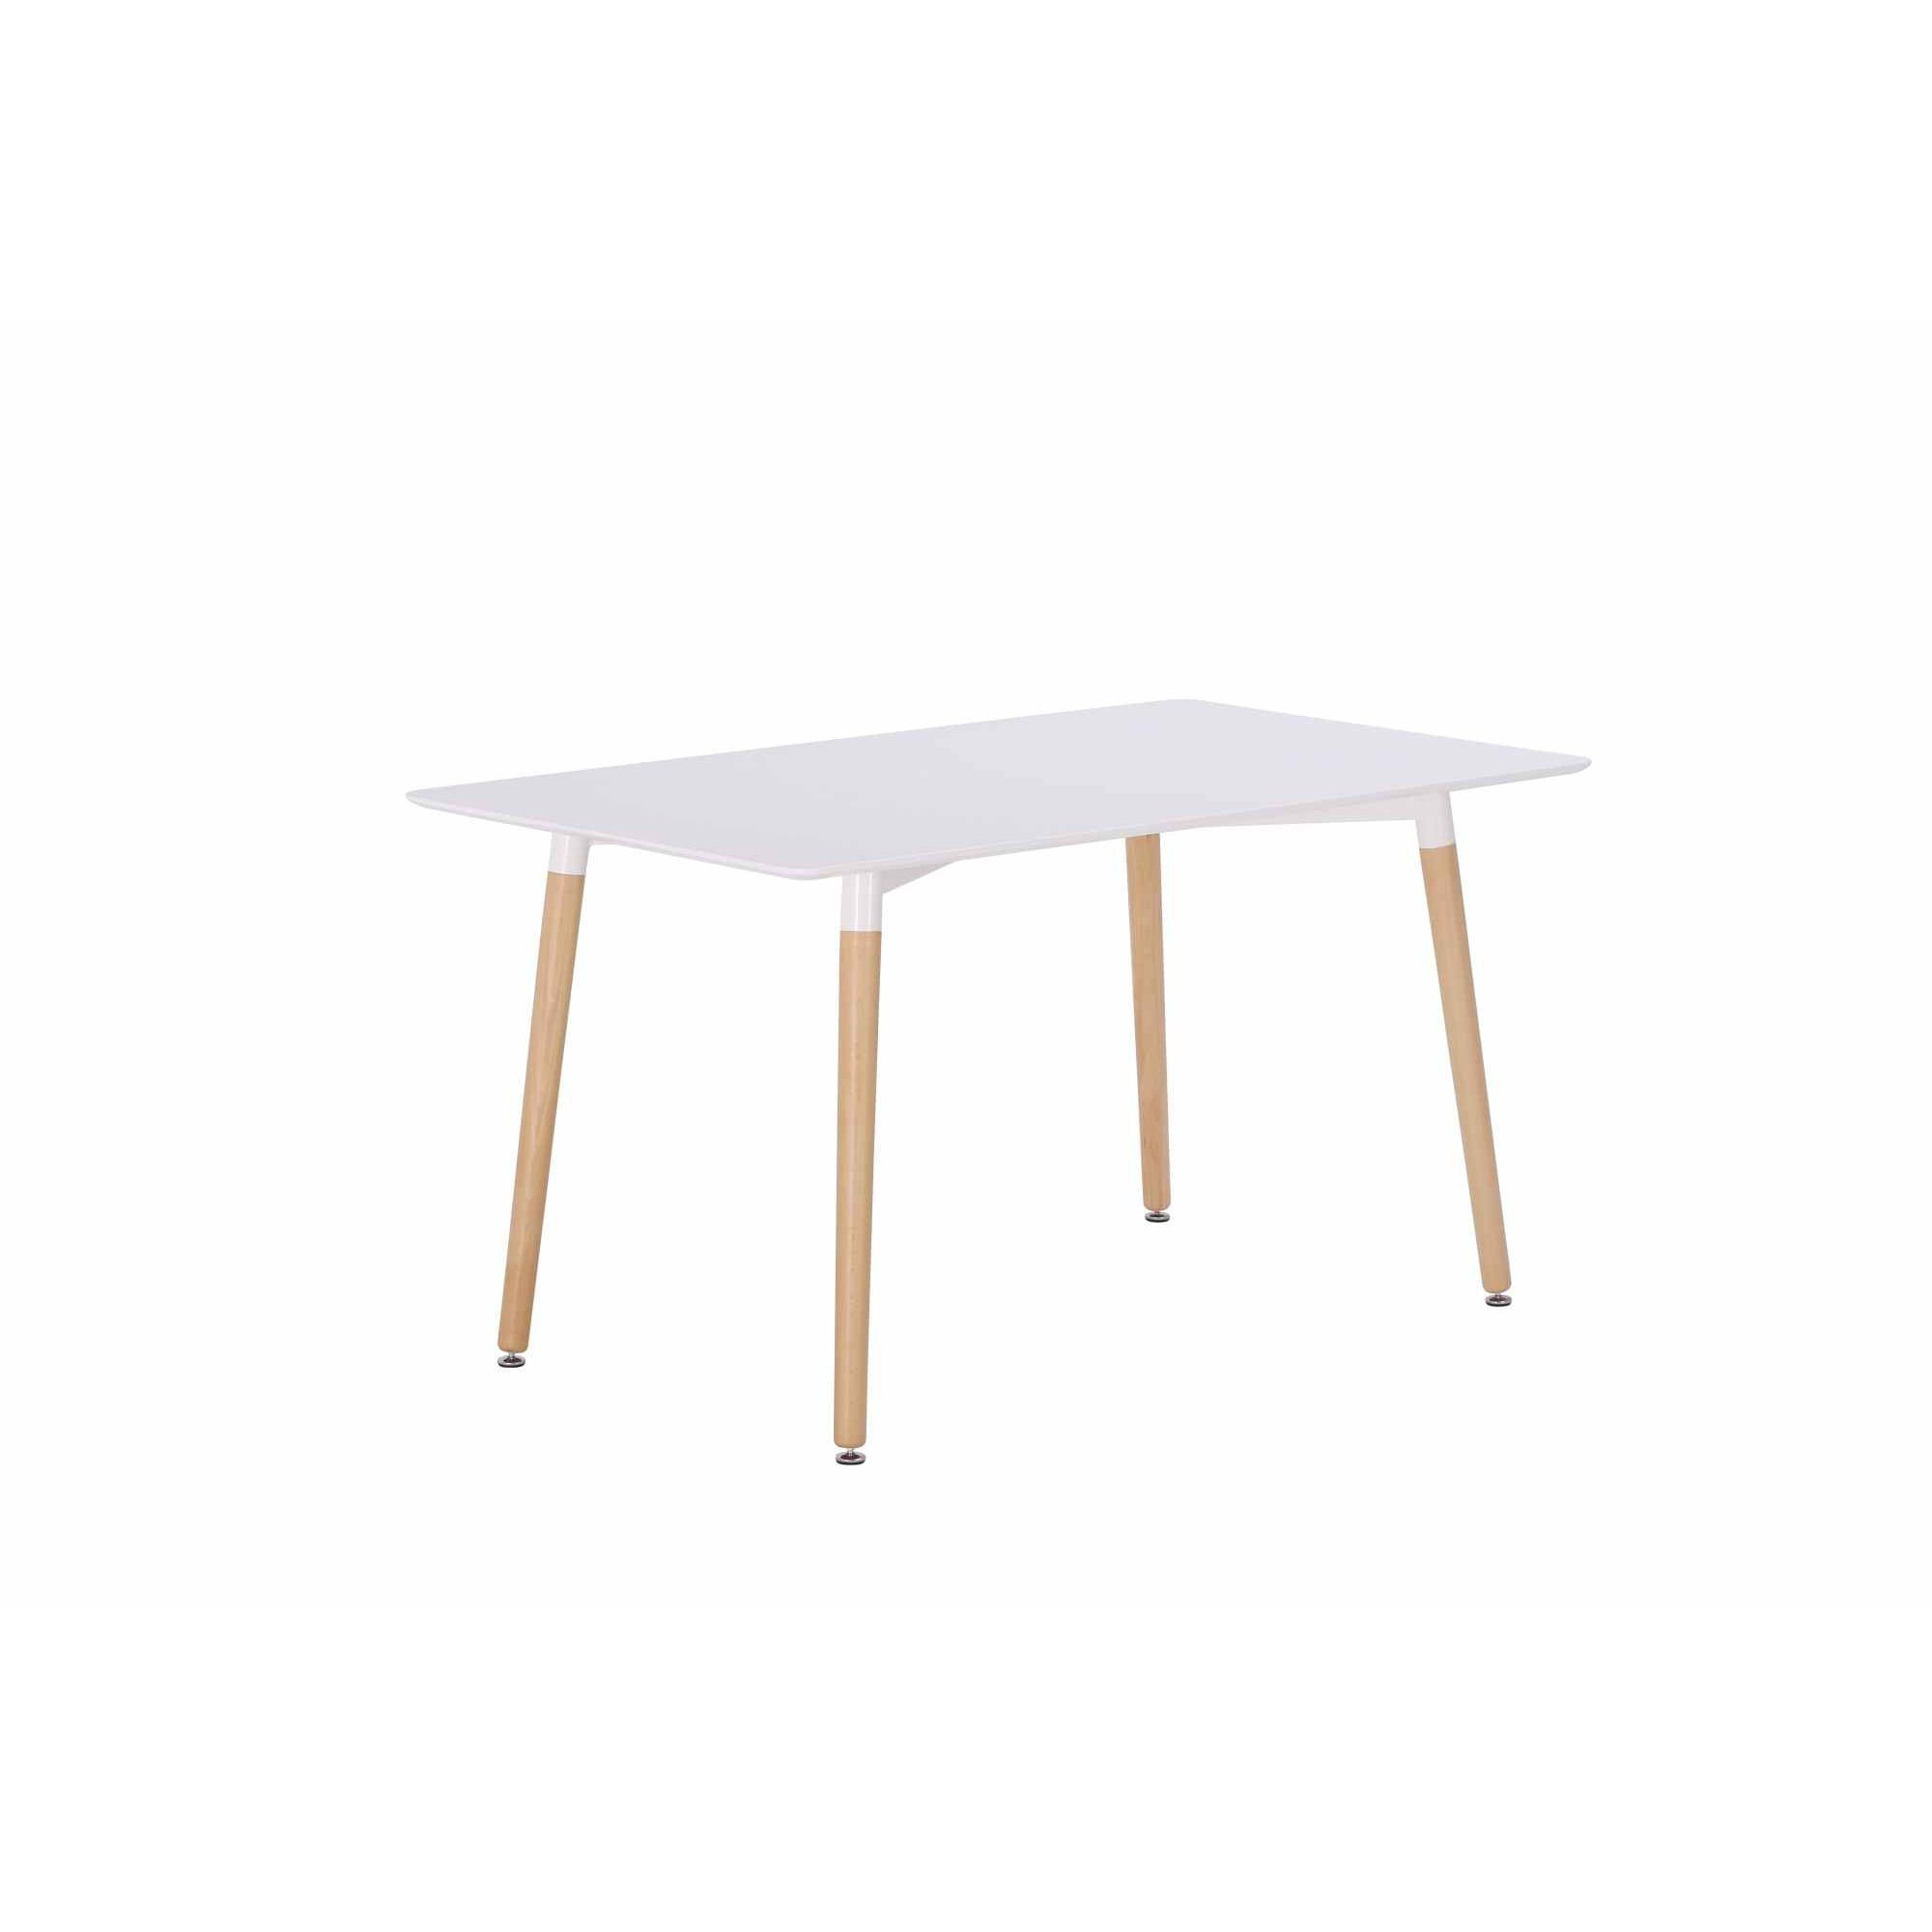 deco in paris 4 table a manger en bois laquee blanc camilia table camilia. Black Bedroom Furniture Sets. Home Design Ideas